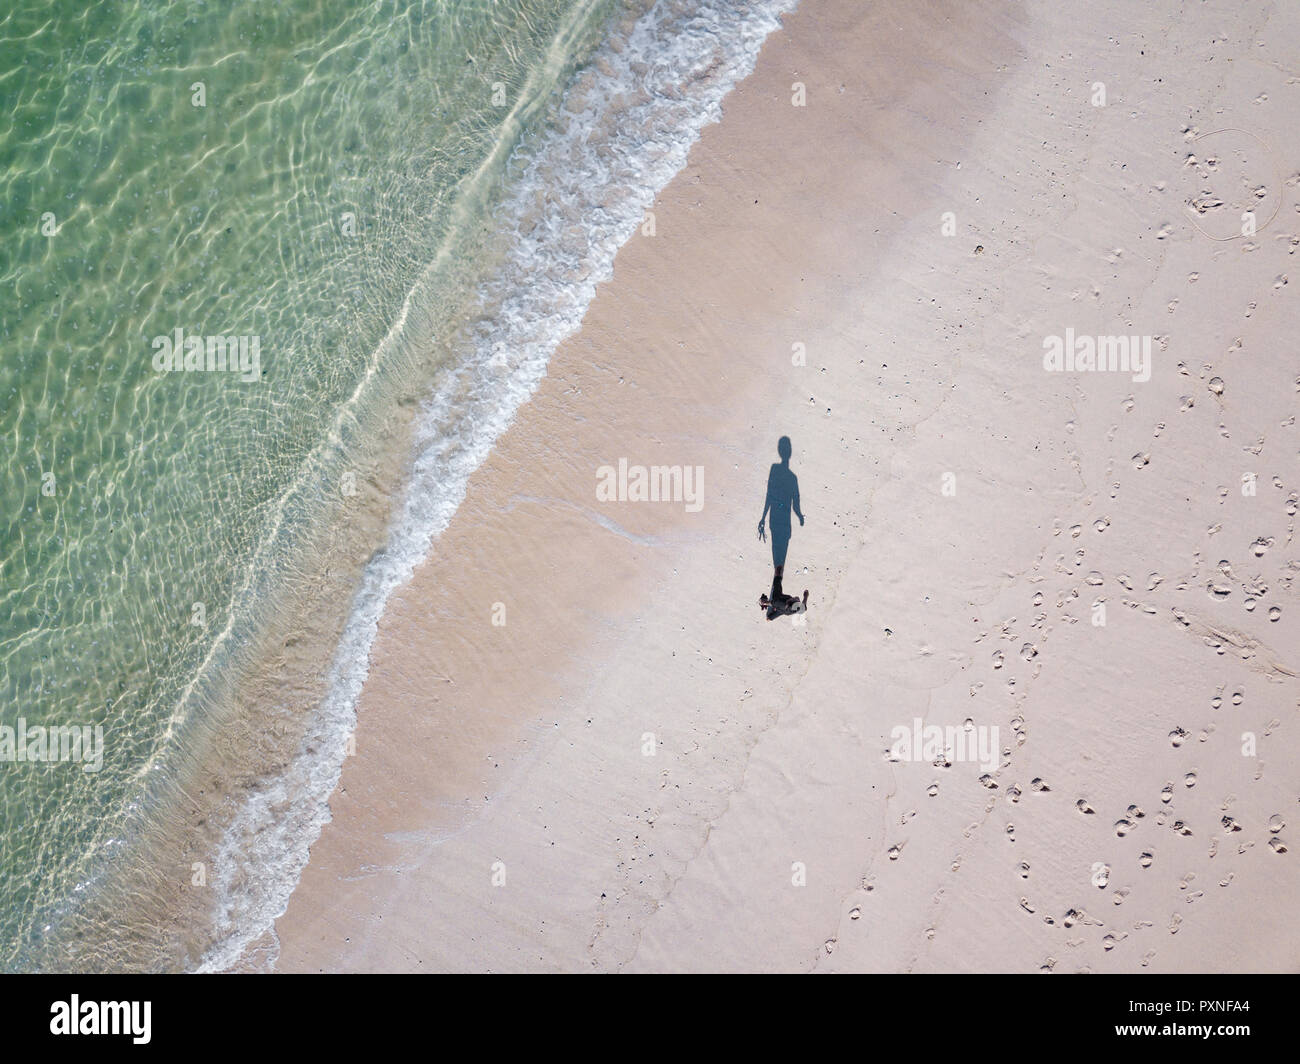 Indonesia, Bali, Aerial view, beach stroll, shadow of person - Stock Image